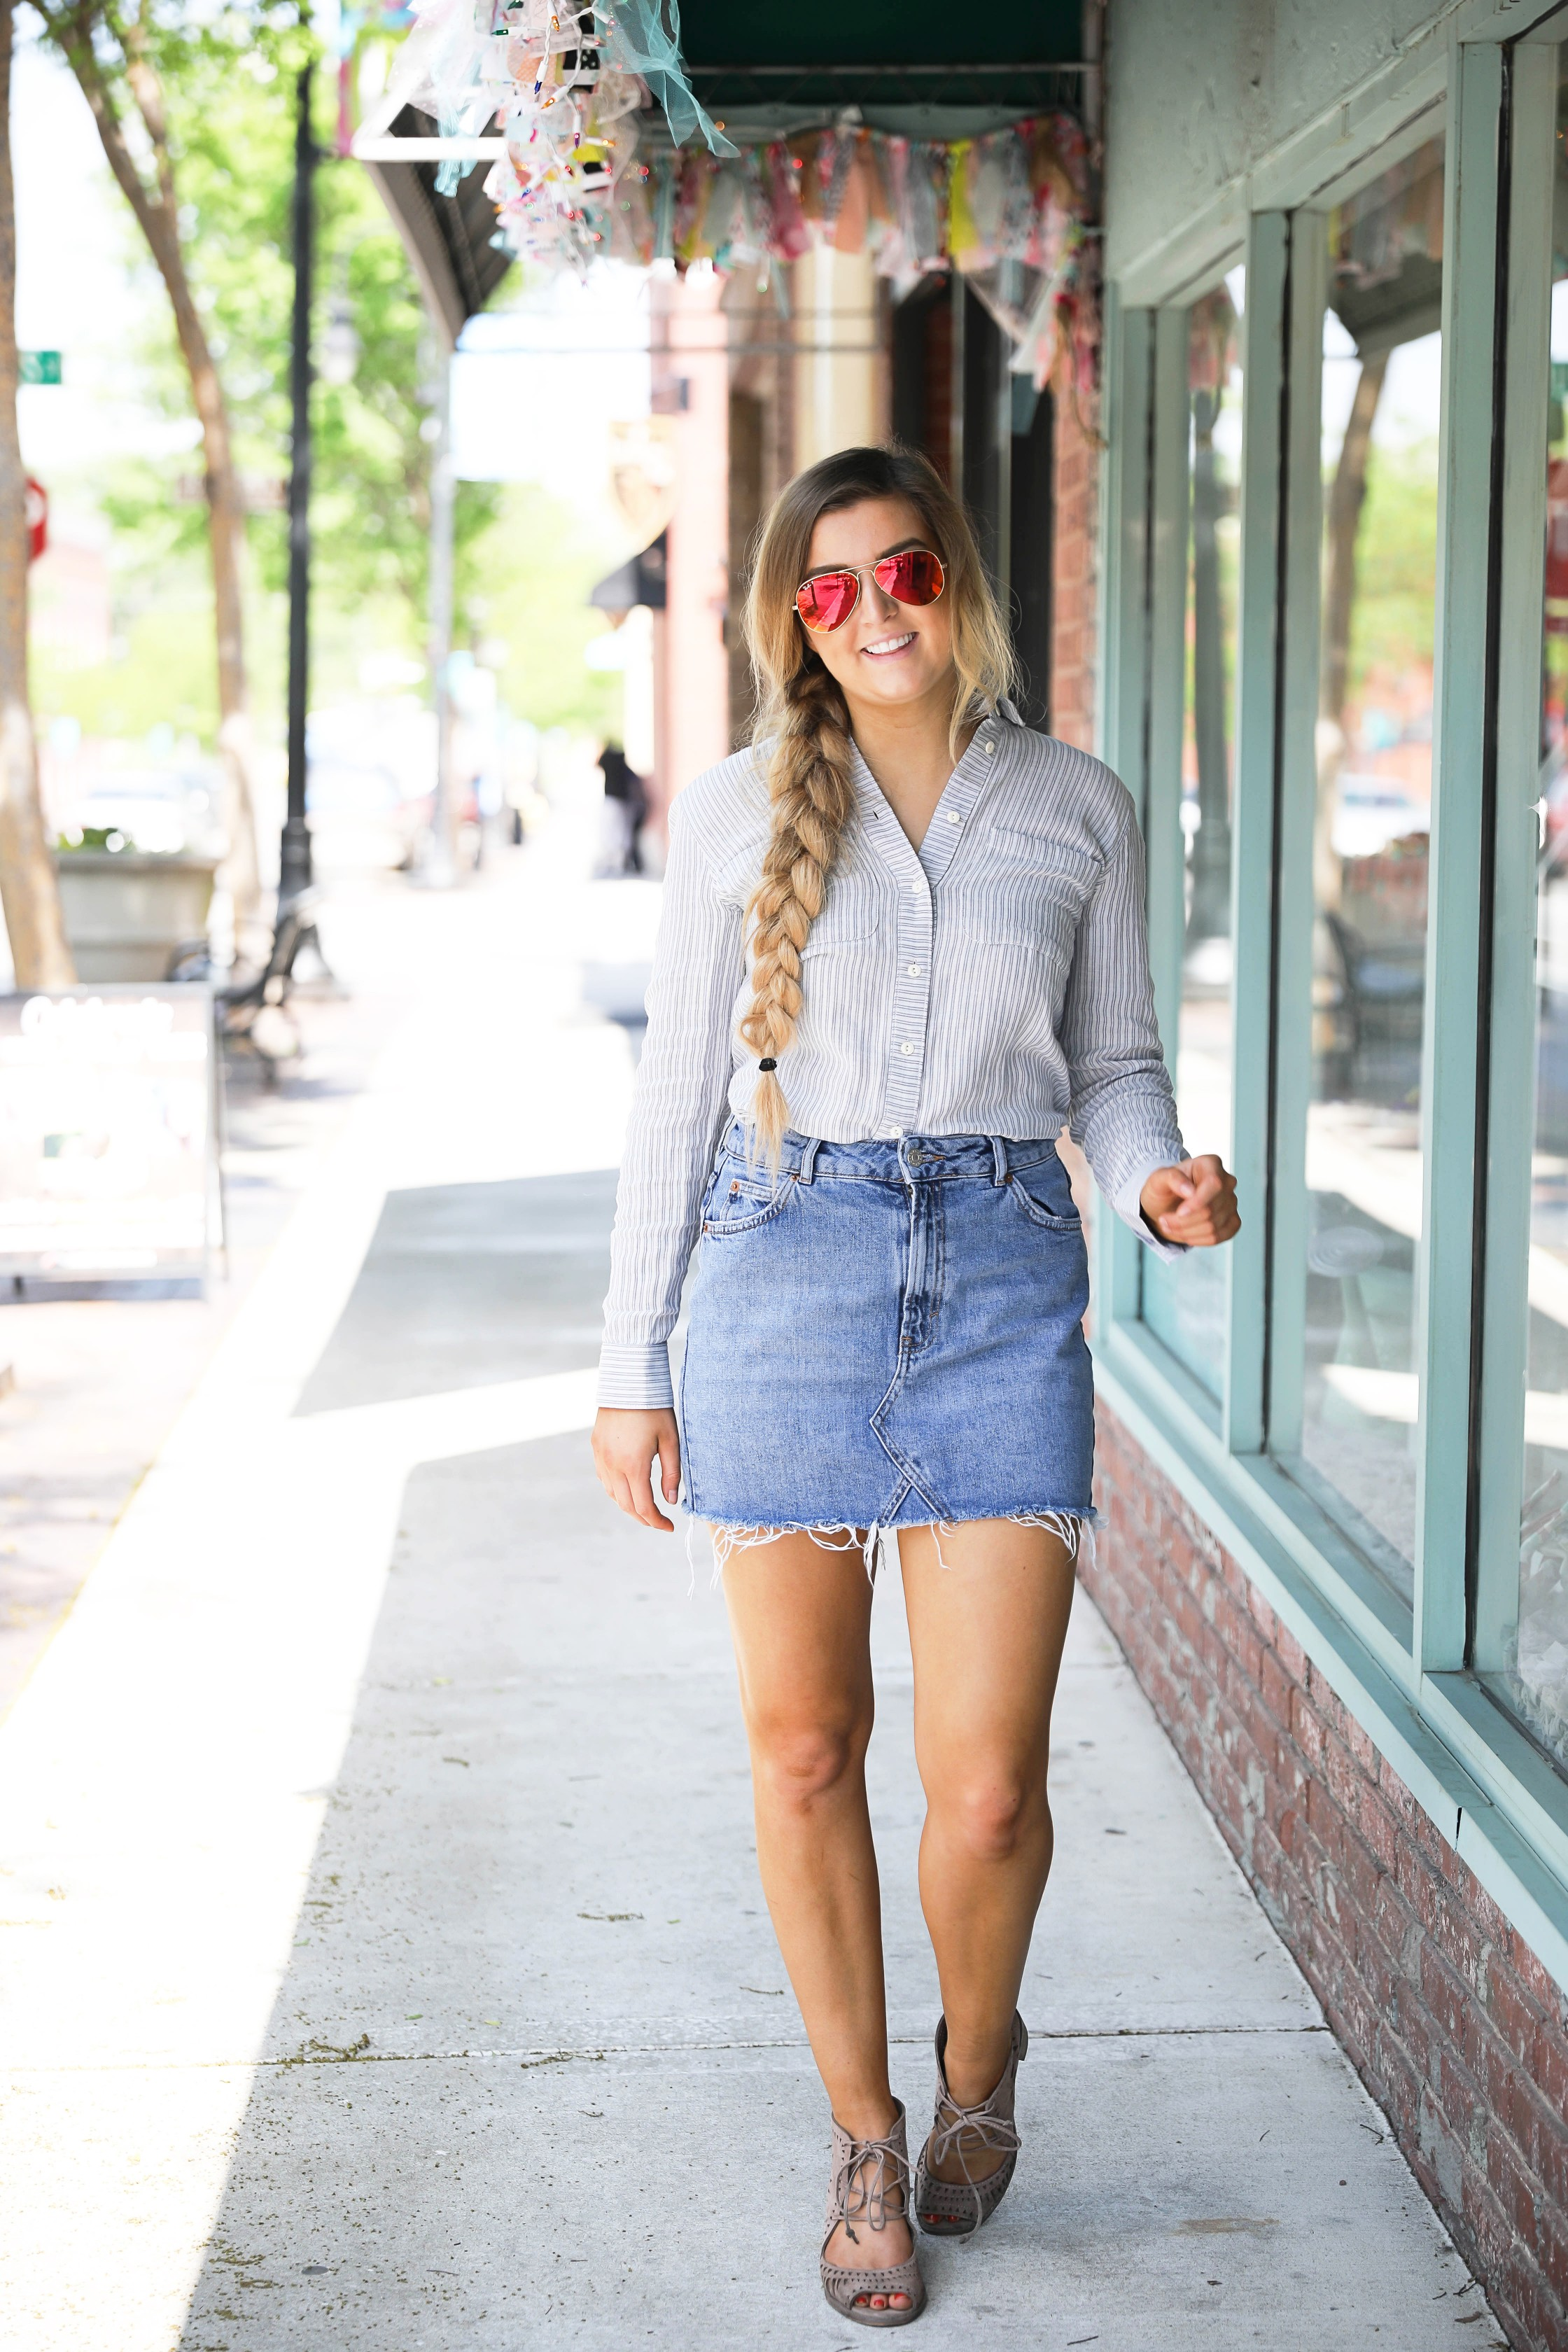 Jean skirt with oxford and ray ban sunglasses on fashion blog daily dose of charm by Lauren Lindmark dailydoseofcharm.com